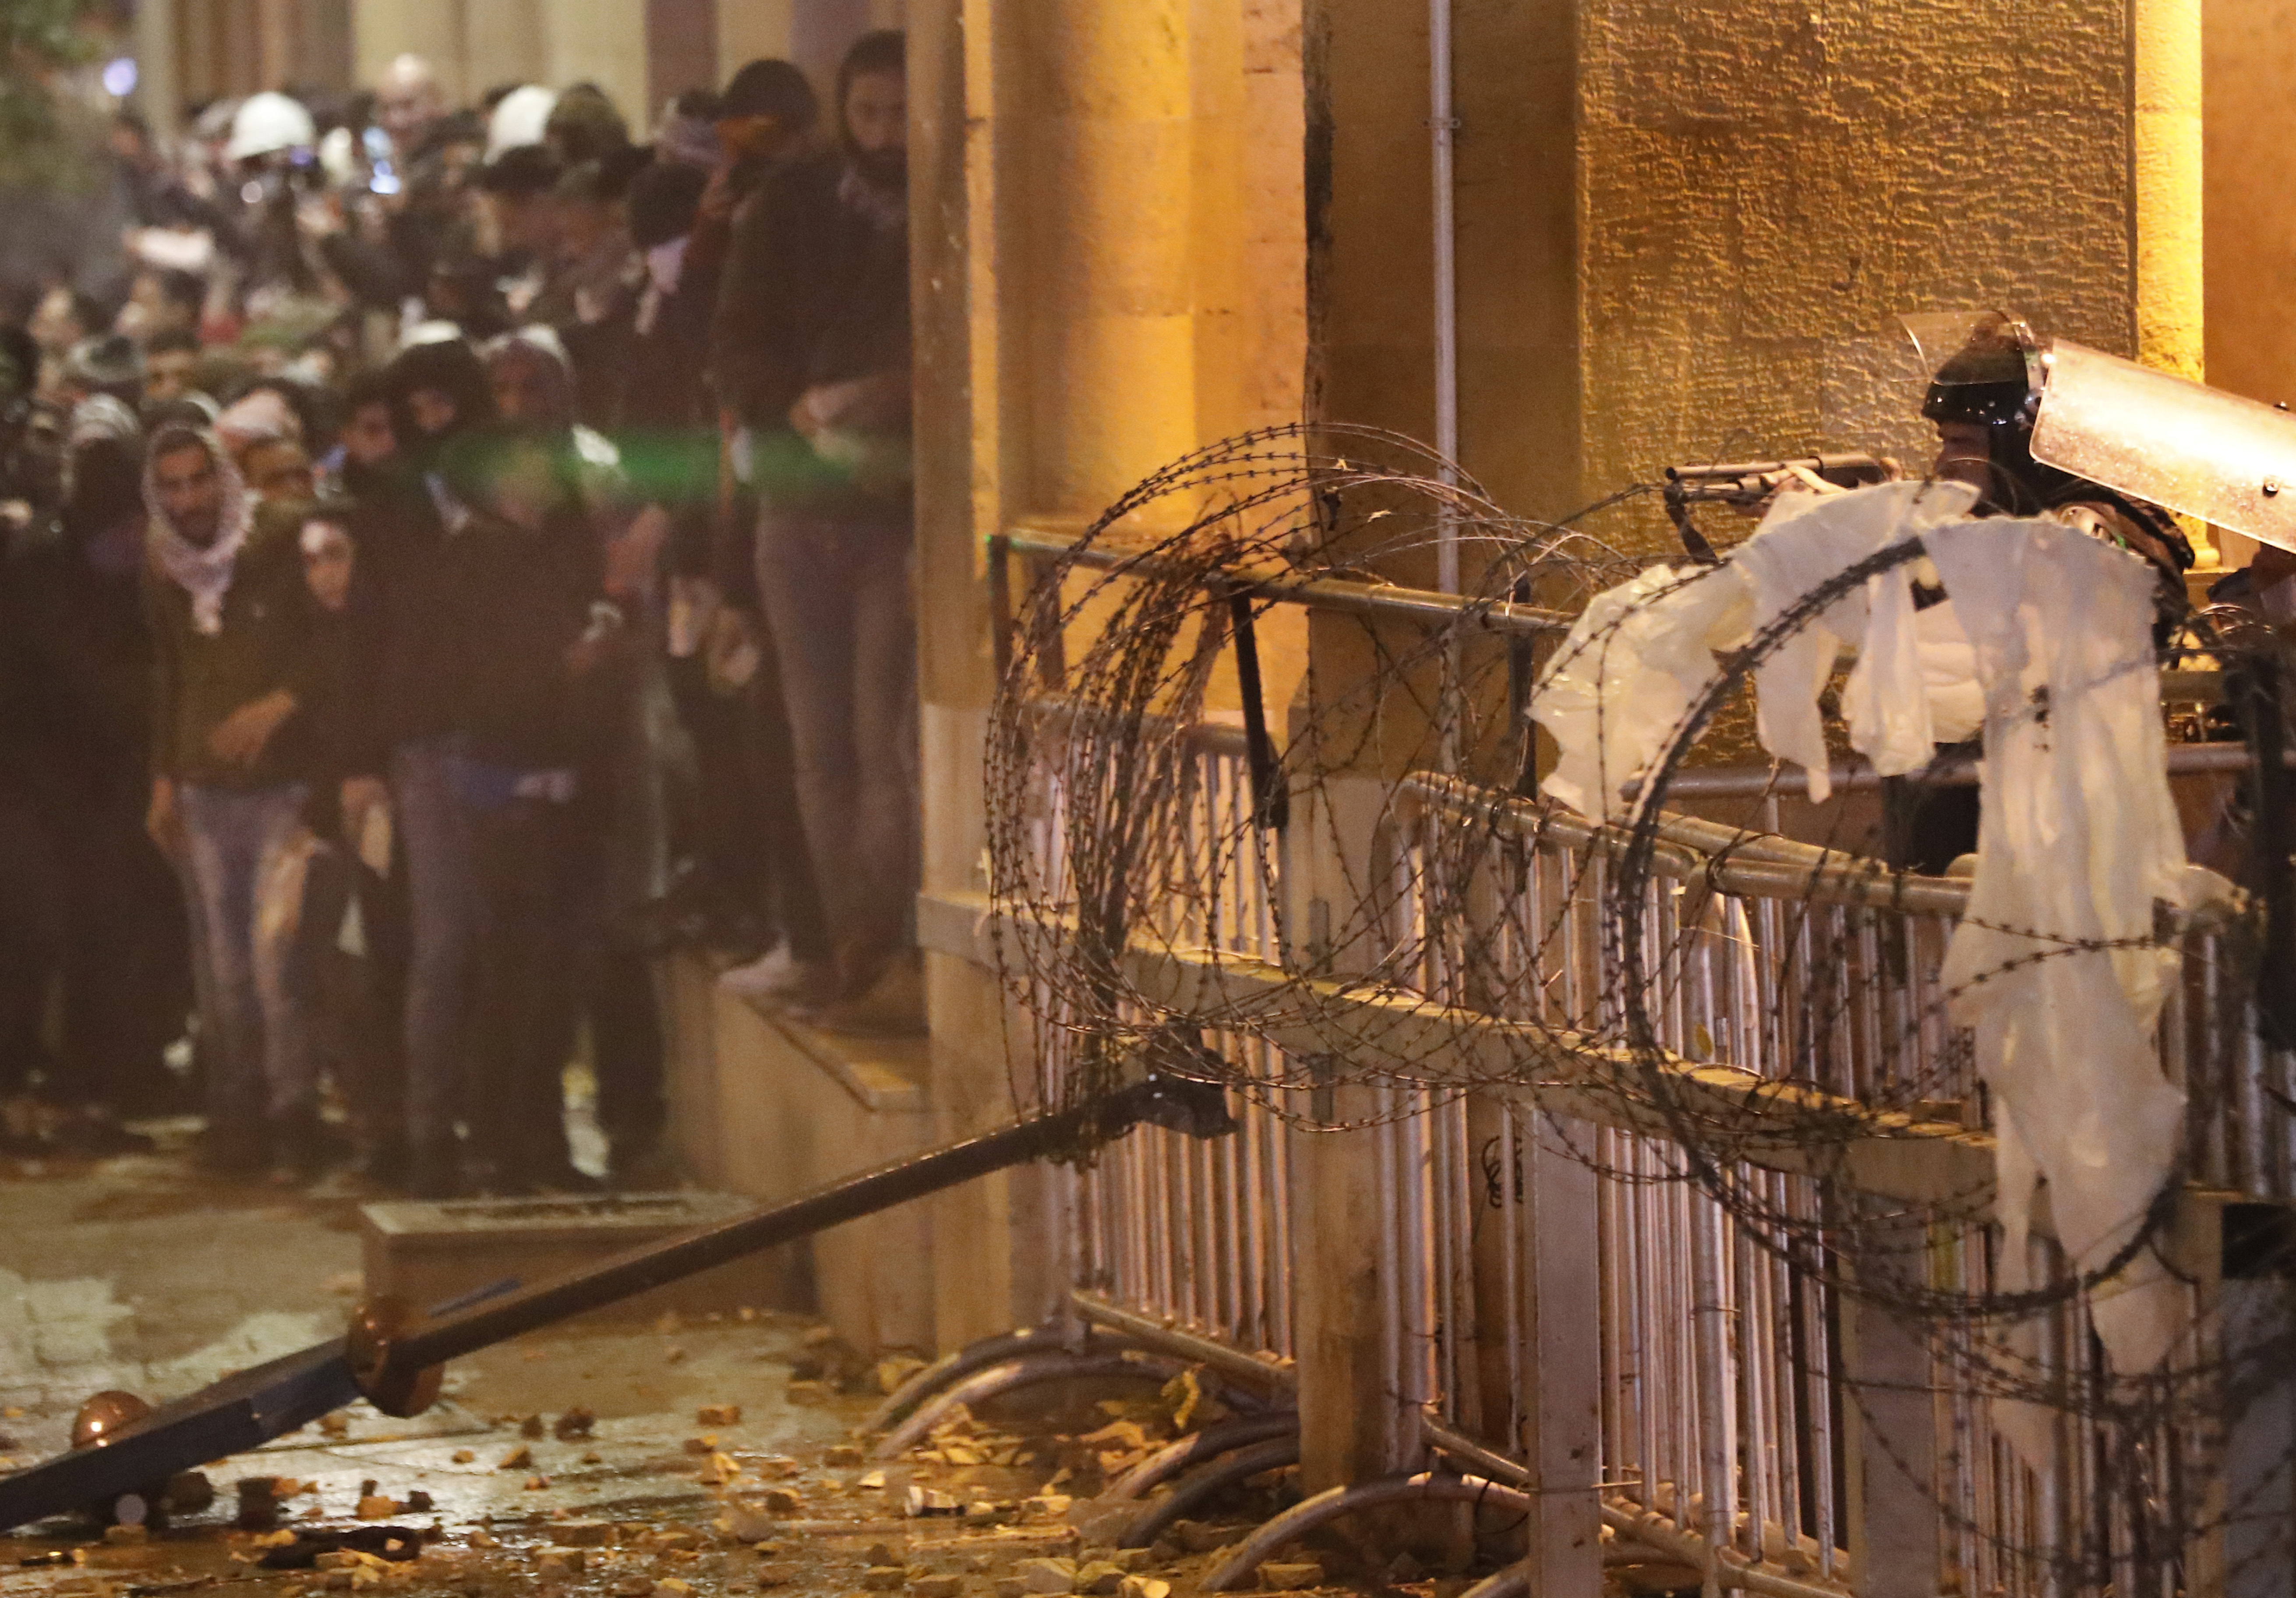 Violence escalates in Beirut as protesters clash with police